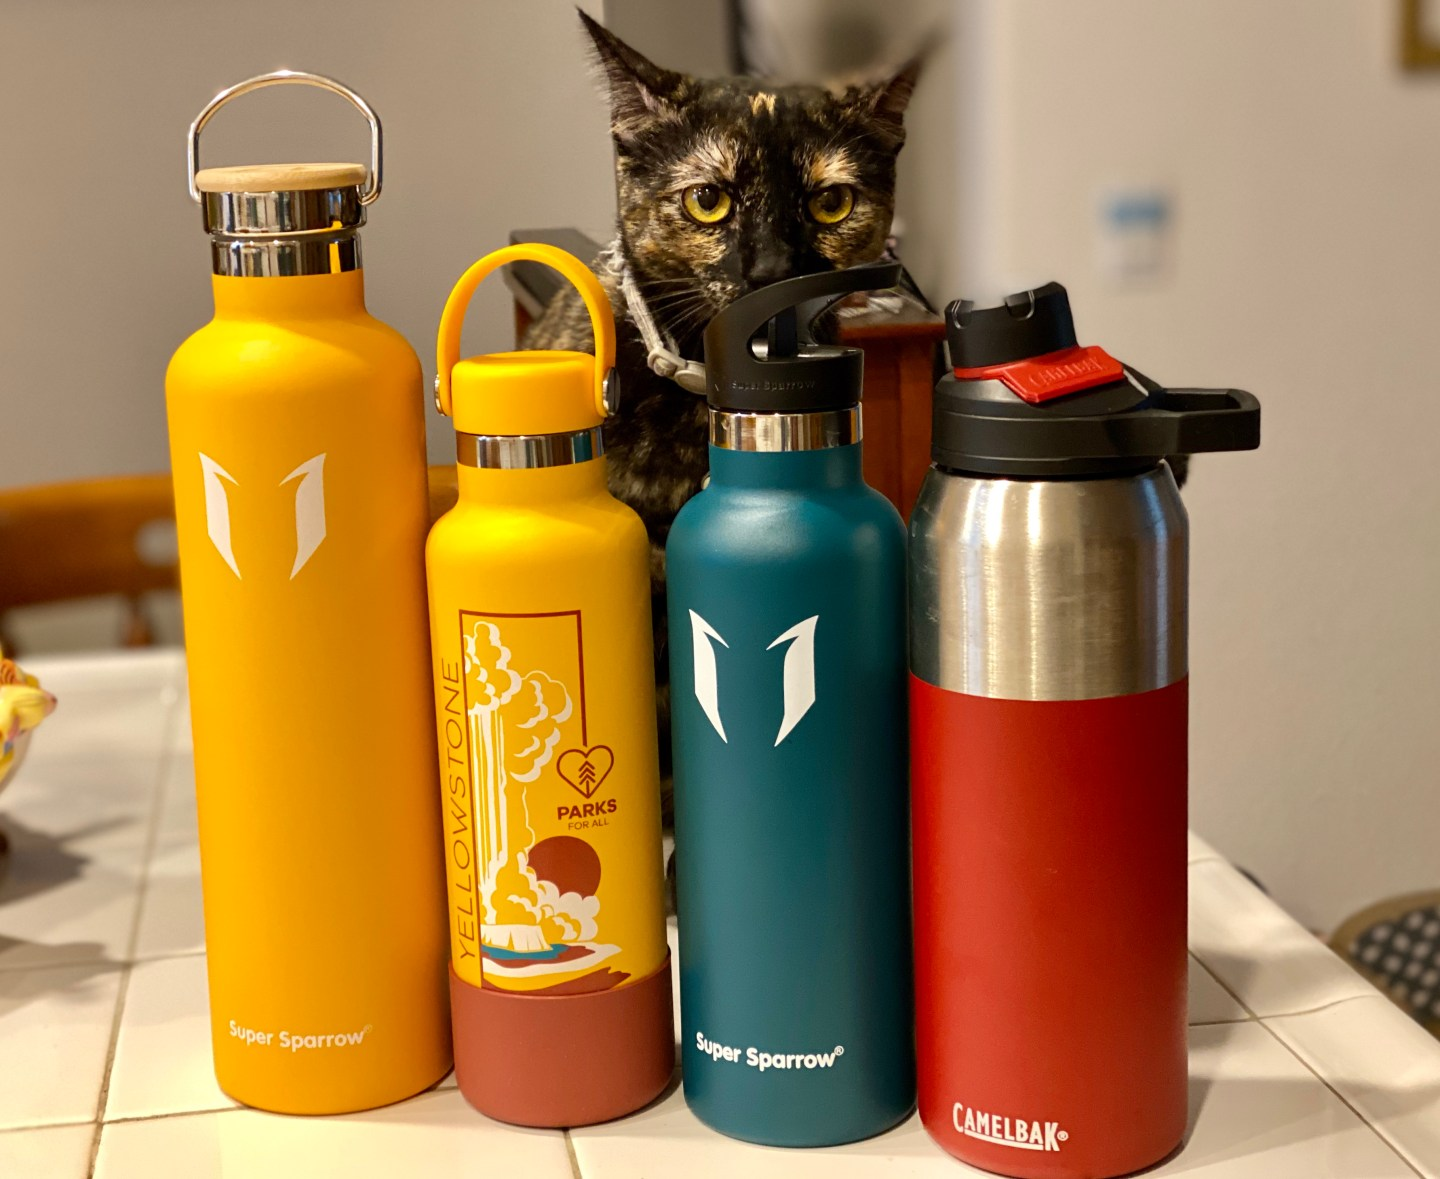 Insulated bottles: Super Sparrow vs Hydro Flask… how do they compare?